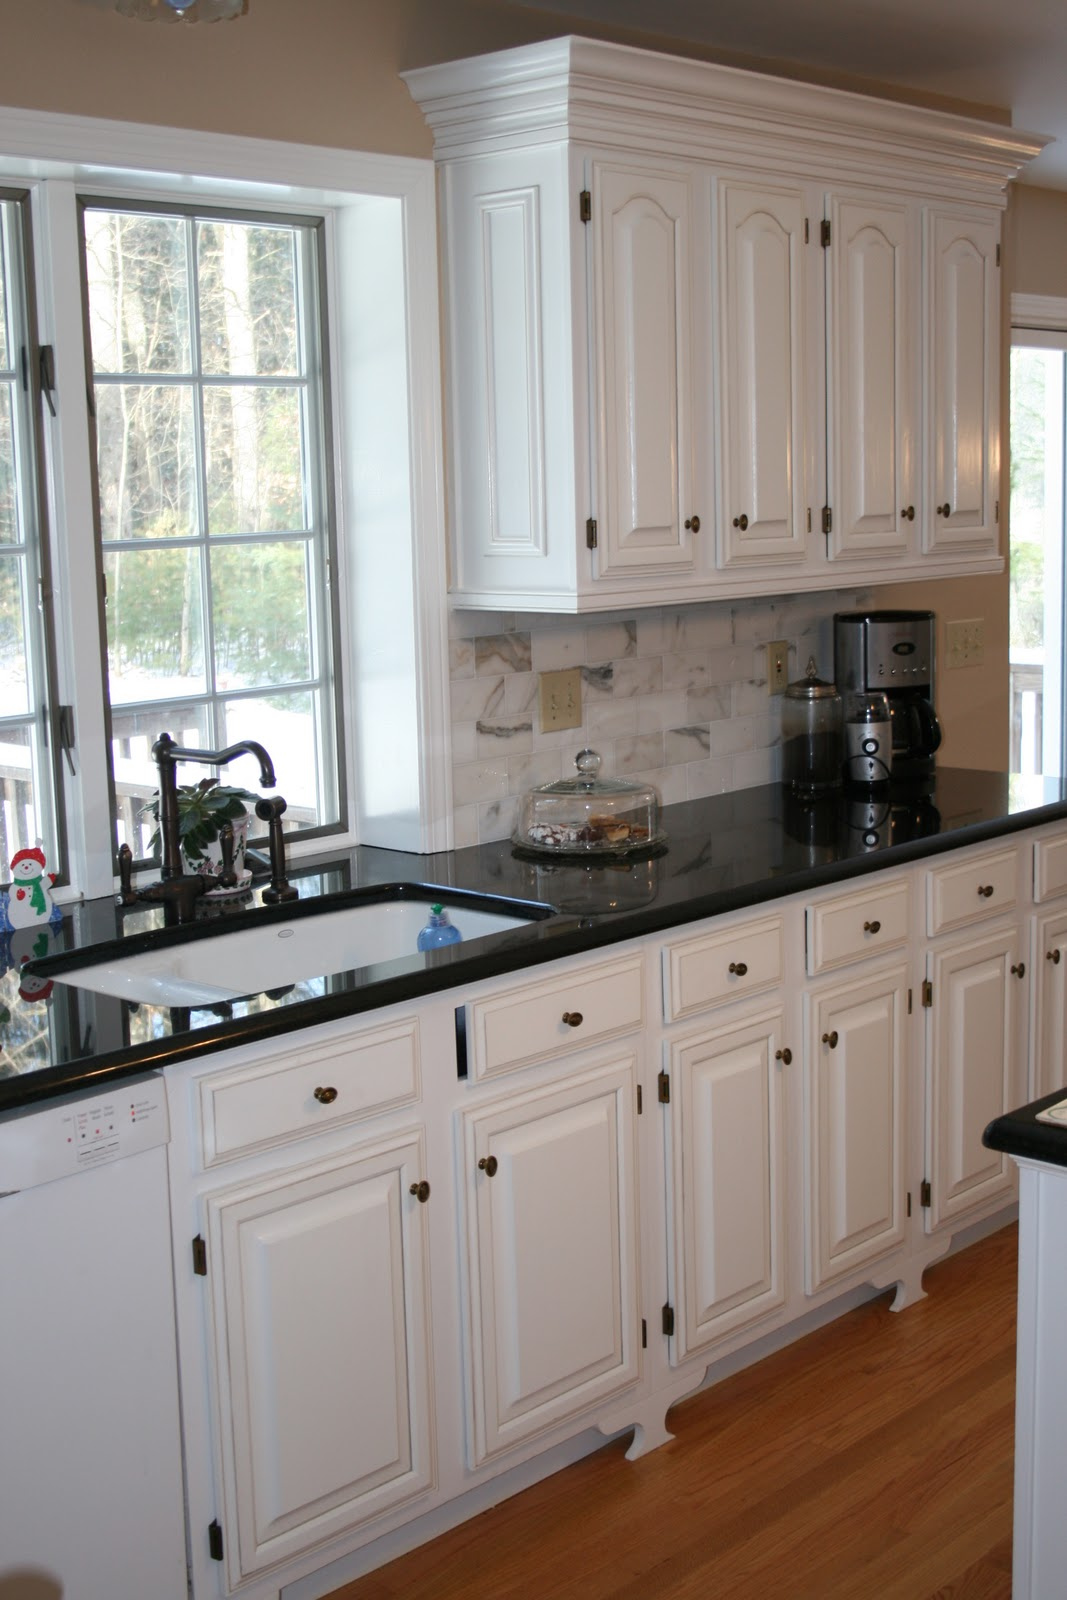 Kitchen Cabinets With Black Trim Design Notes Kitchen Remodel Completed